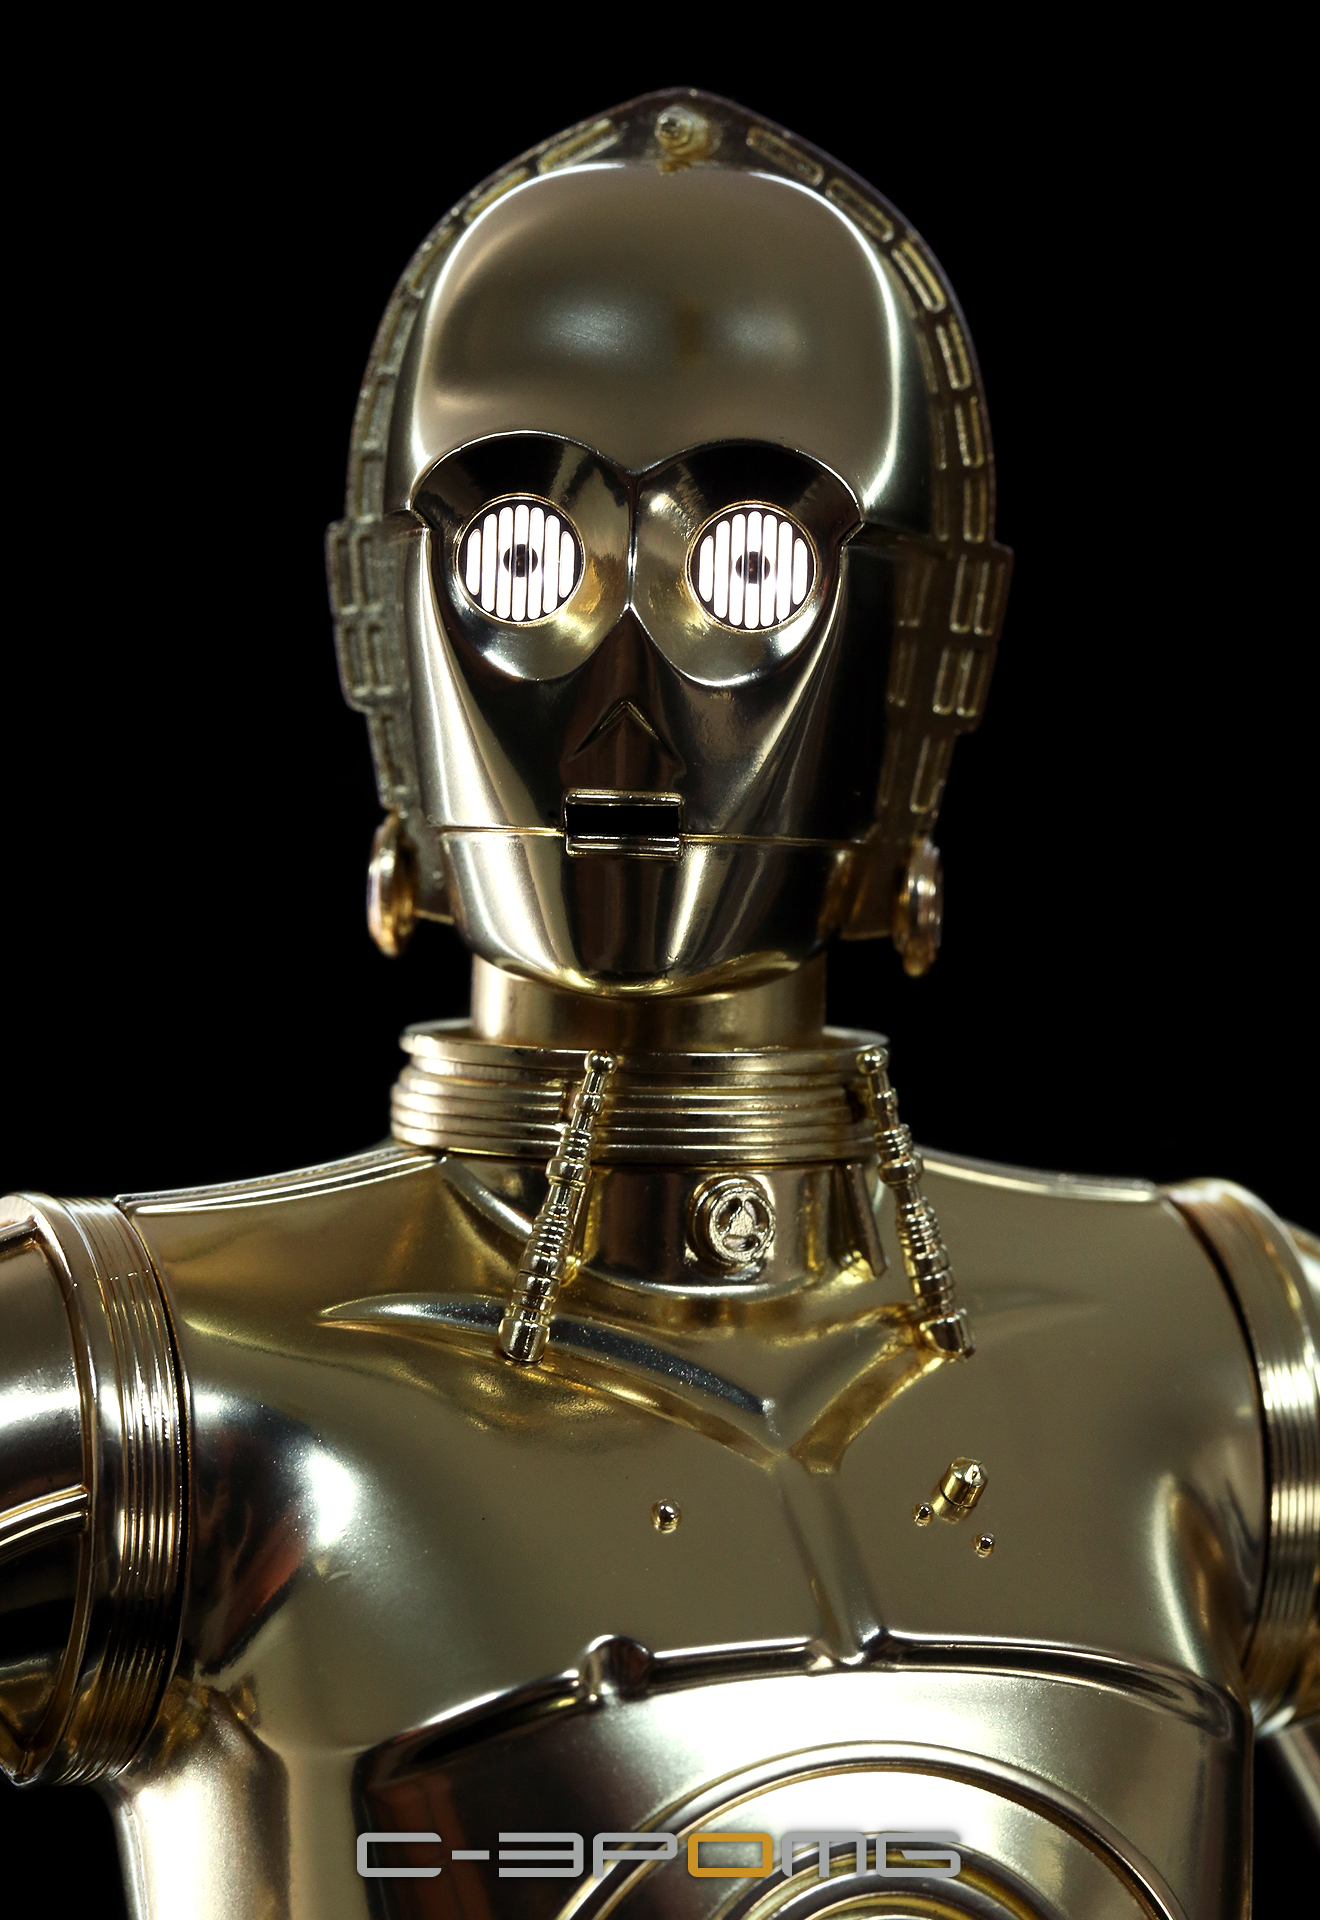 [Bandai] Star Wars: C-3PO - Perfect Model 1/6 scale - LANÇADO!!! - Página 2 C-3PO1127_zpseb7538ce